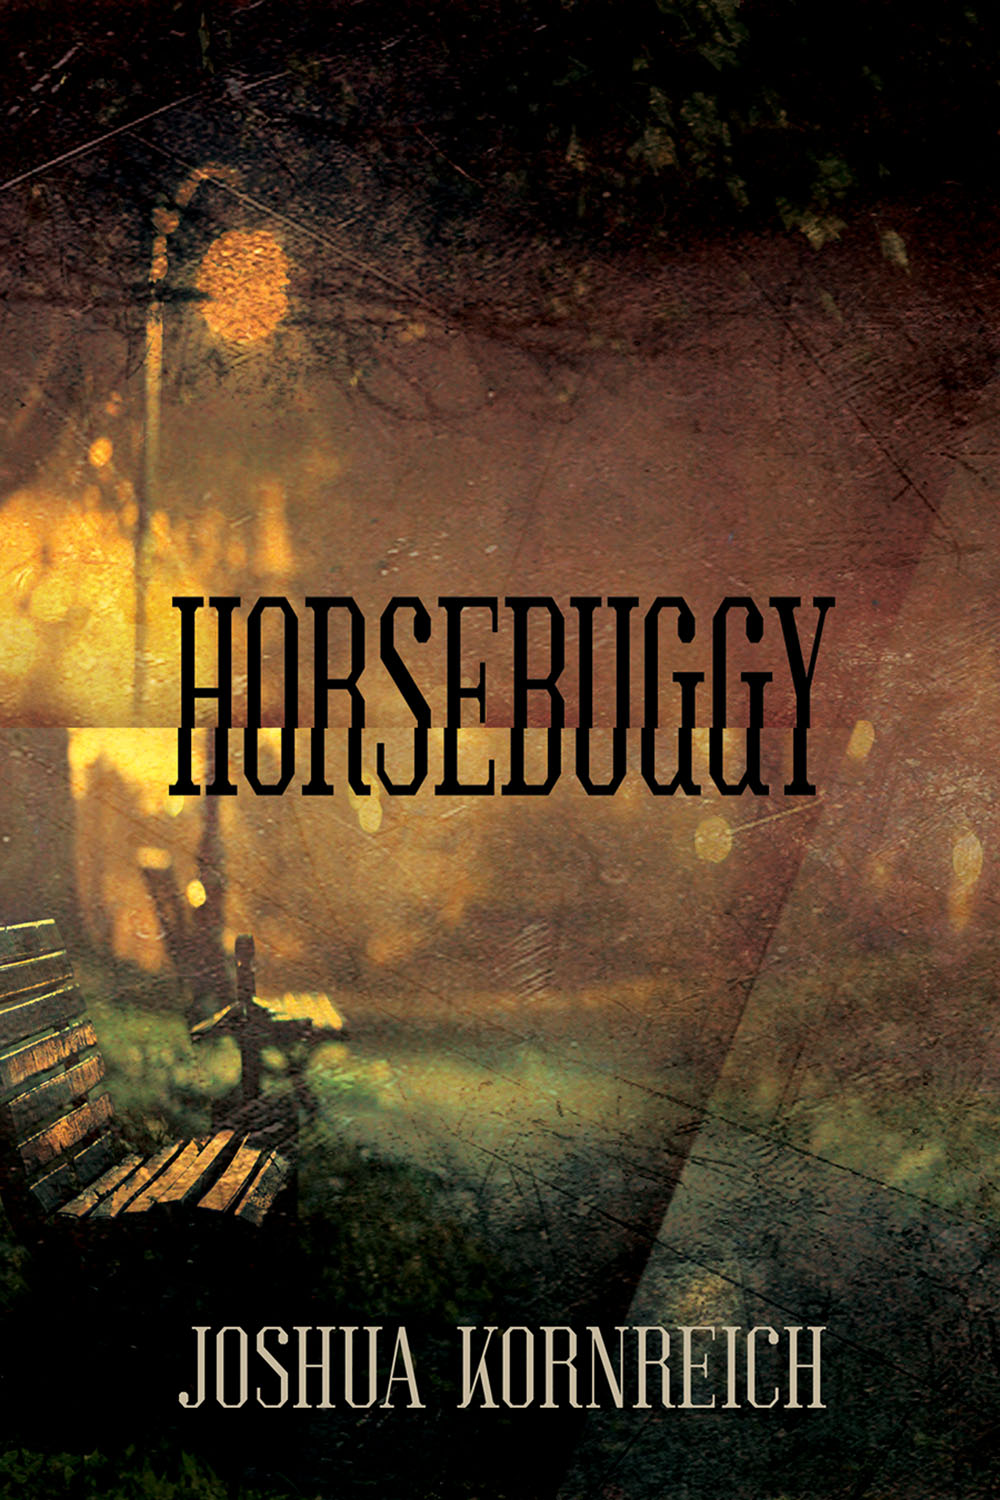 HORSEBUGGY  (Sagging Meniscus Press, 2019)     Buy Now     After a nefarious yet revered mayor bans horse-drawn carriages in his city, a reclusive horse-and-buggy driver loses his job, his lover, and his unborn child, as the desolate farm he has lived on his whole life deteriorates around him along with his sanity. But this lone wolf vows revenge. With language lean and lyrical, and humor dark and grotesque,  Horsebuggy  is not only a haunting portrait of what happens when man's capacity for intimacy and acceptance is undermined by his more violent and sadistic impulses, but also a tragic love story and a penetrating study of how we destroy ourselves as much with our moralism and self-righteousness as with our vice and self-indulgence.